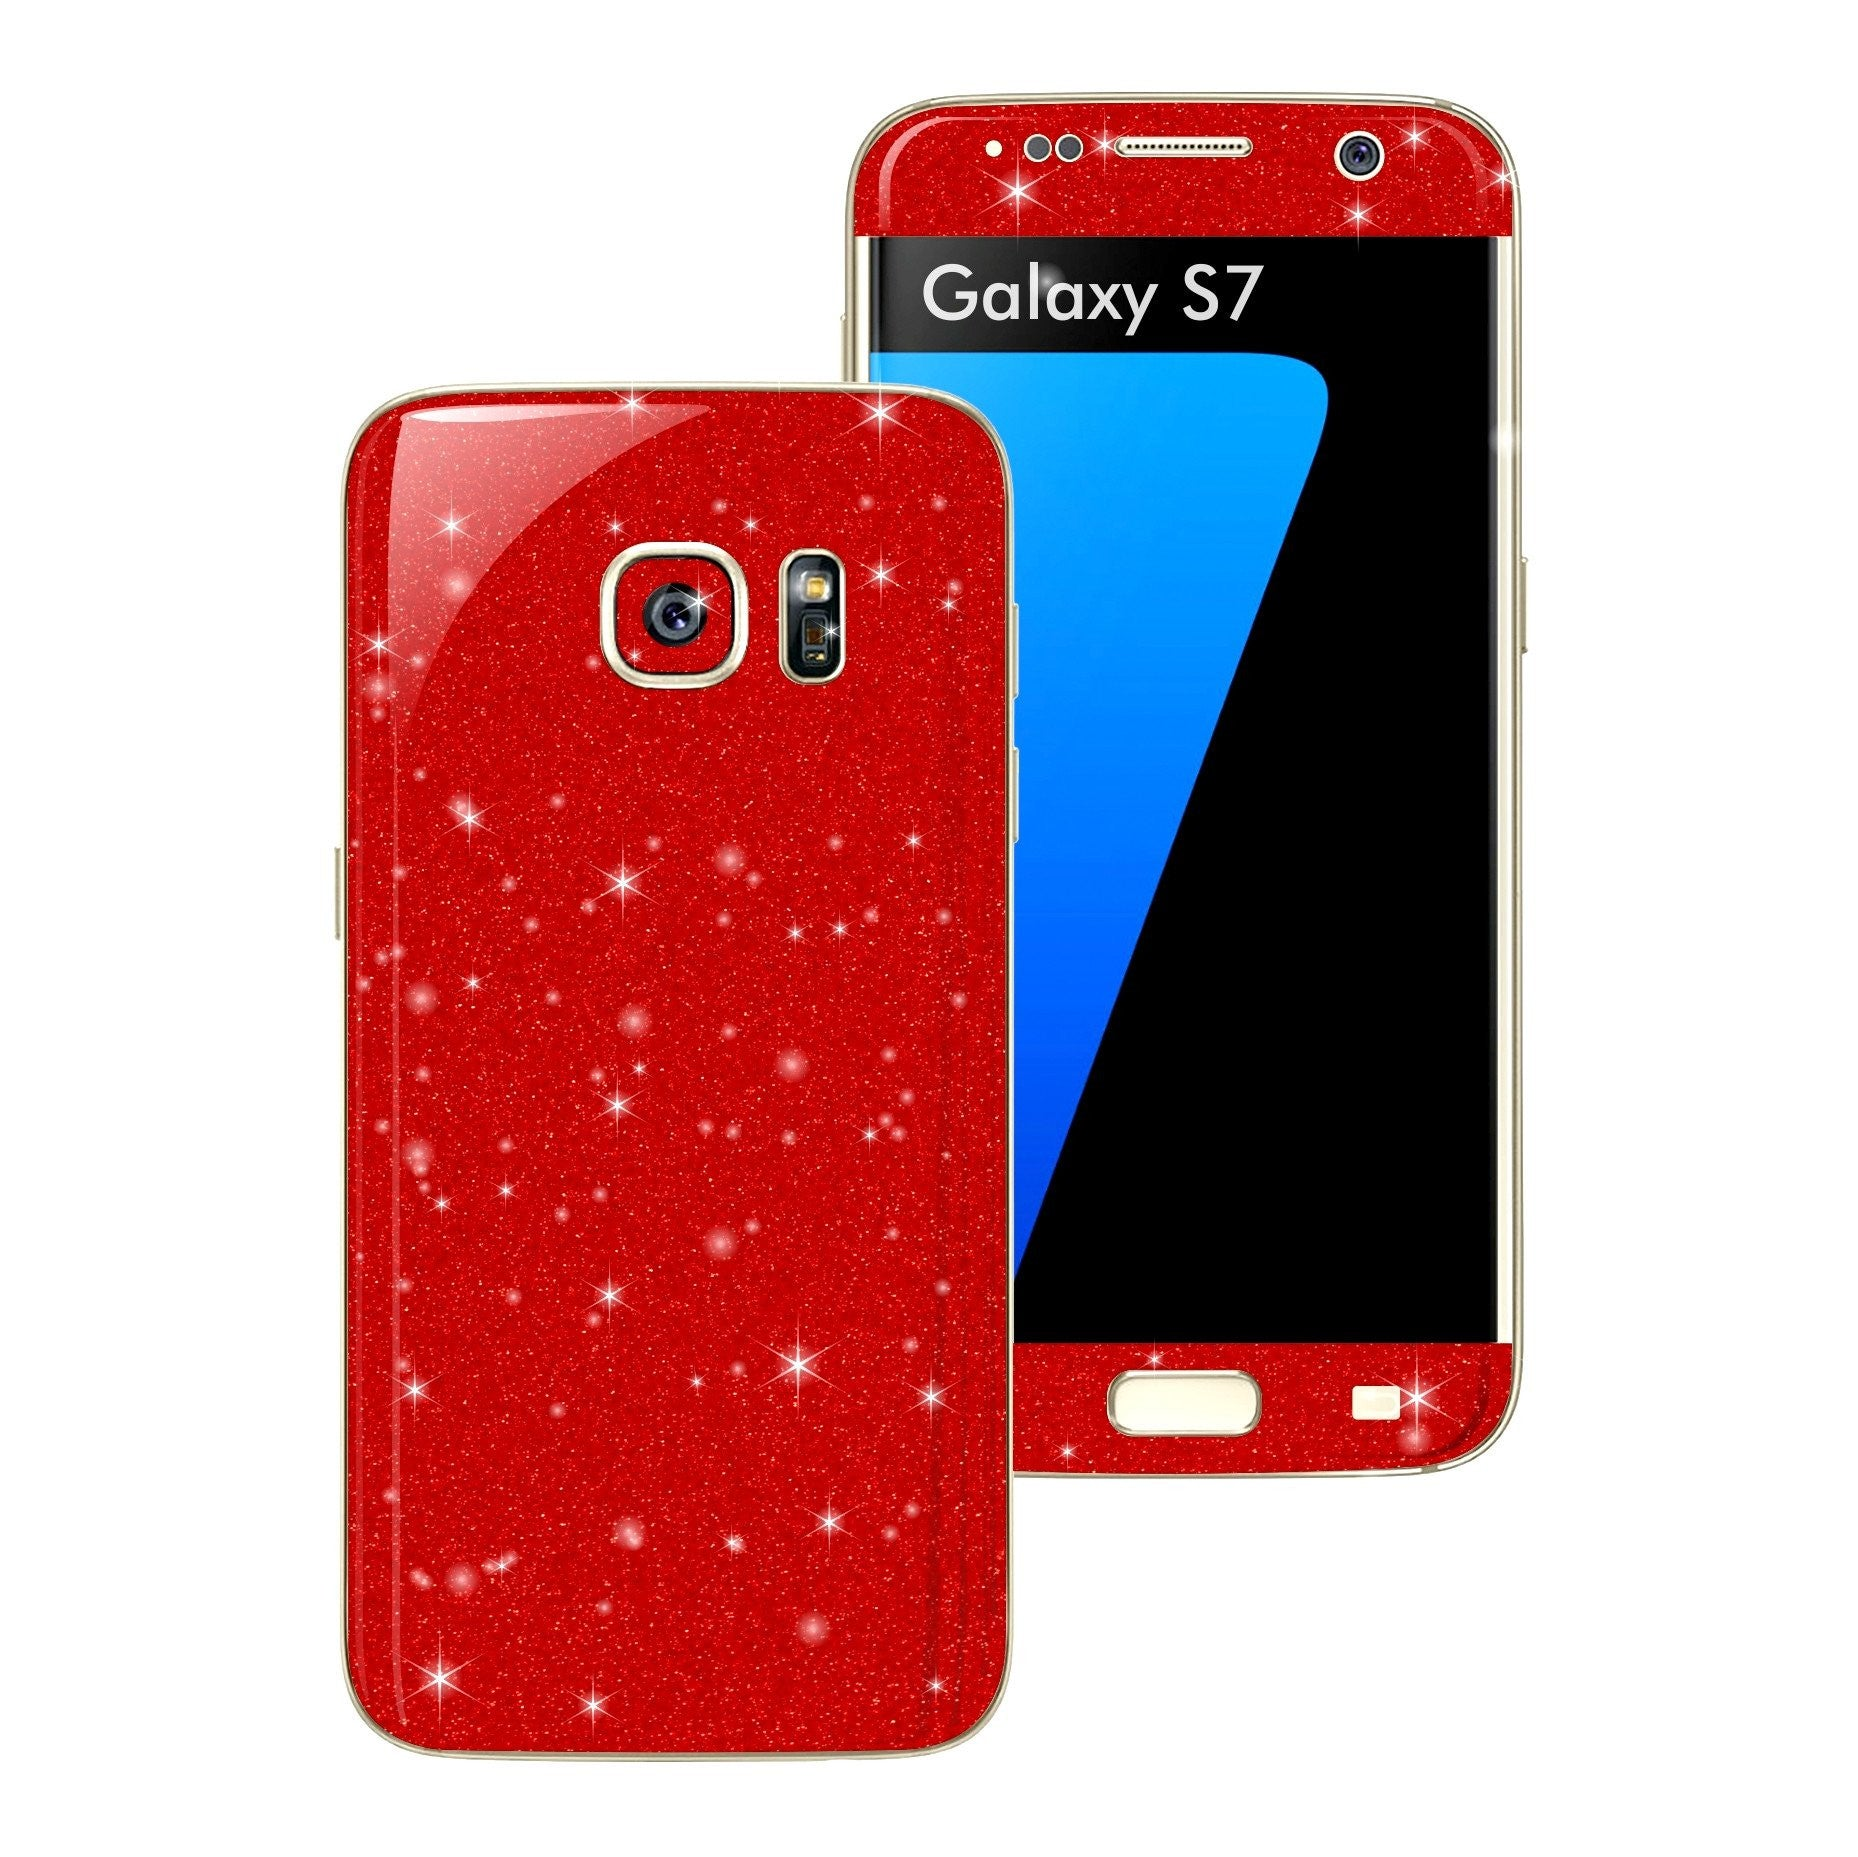 Samsung Galaxy S7 DIAMOND RED Skin Wrap Decal Sticker Cover Protector by EasySkinz